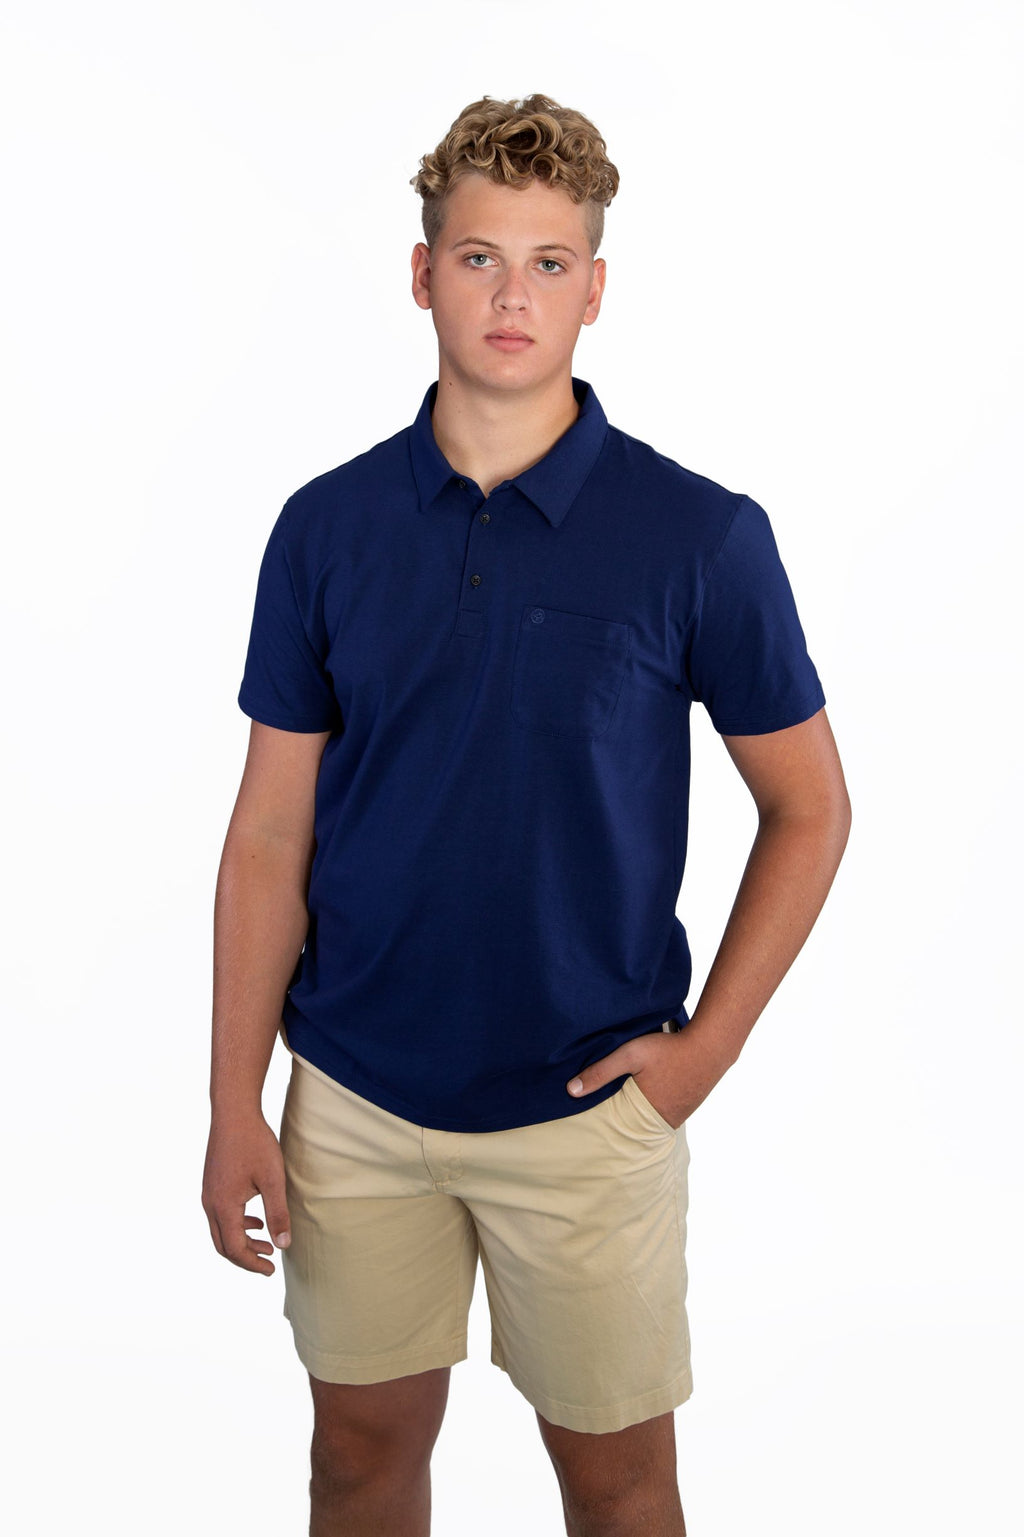 THE BEST-EVER POLO SOLID NAVY